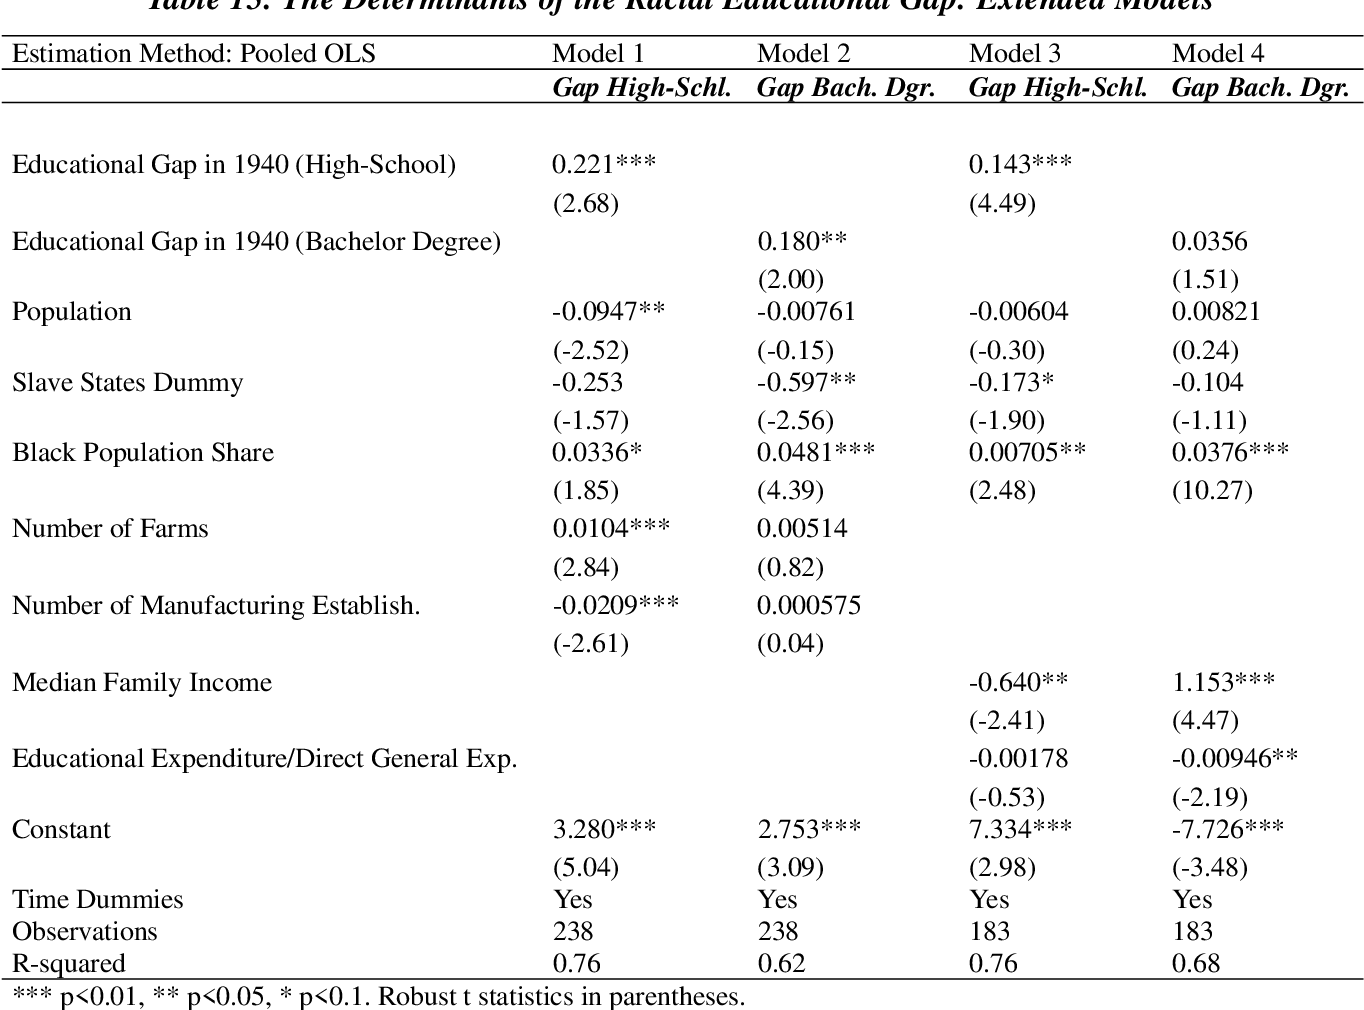 Table 15: The Determinants of the Racial Educational Gap: Extended Models